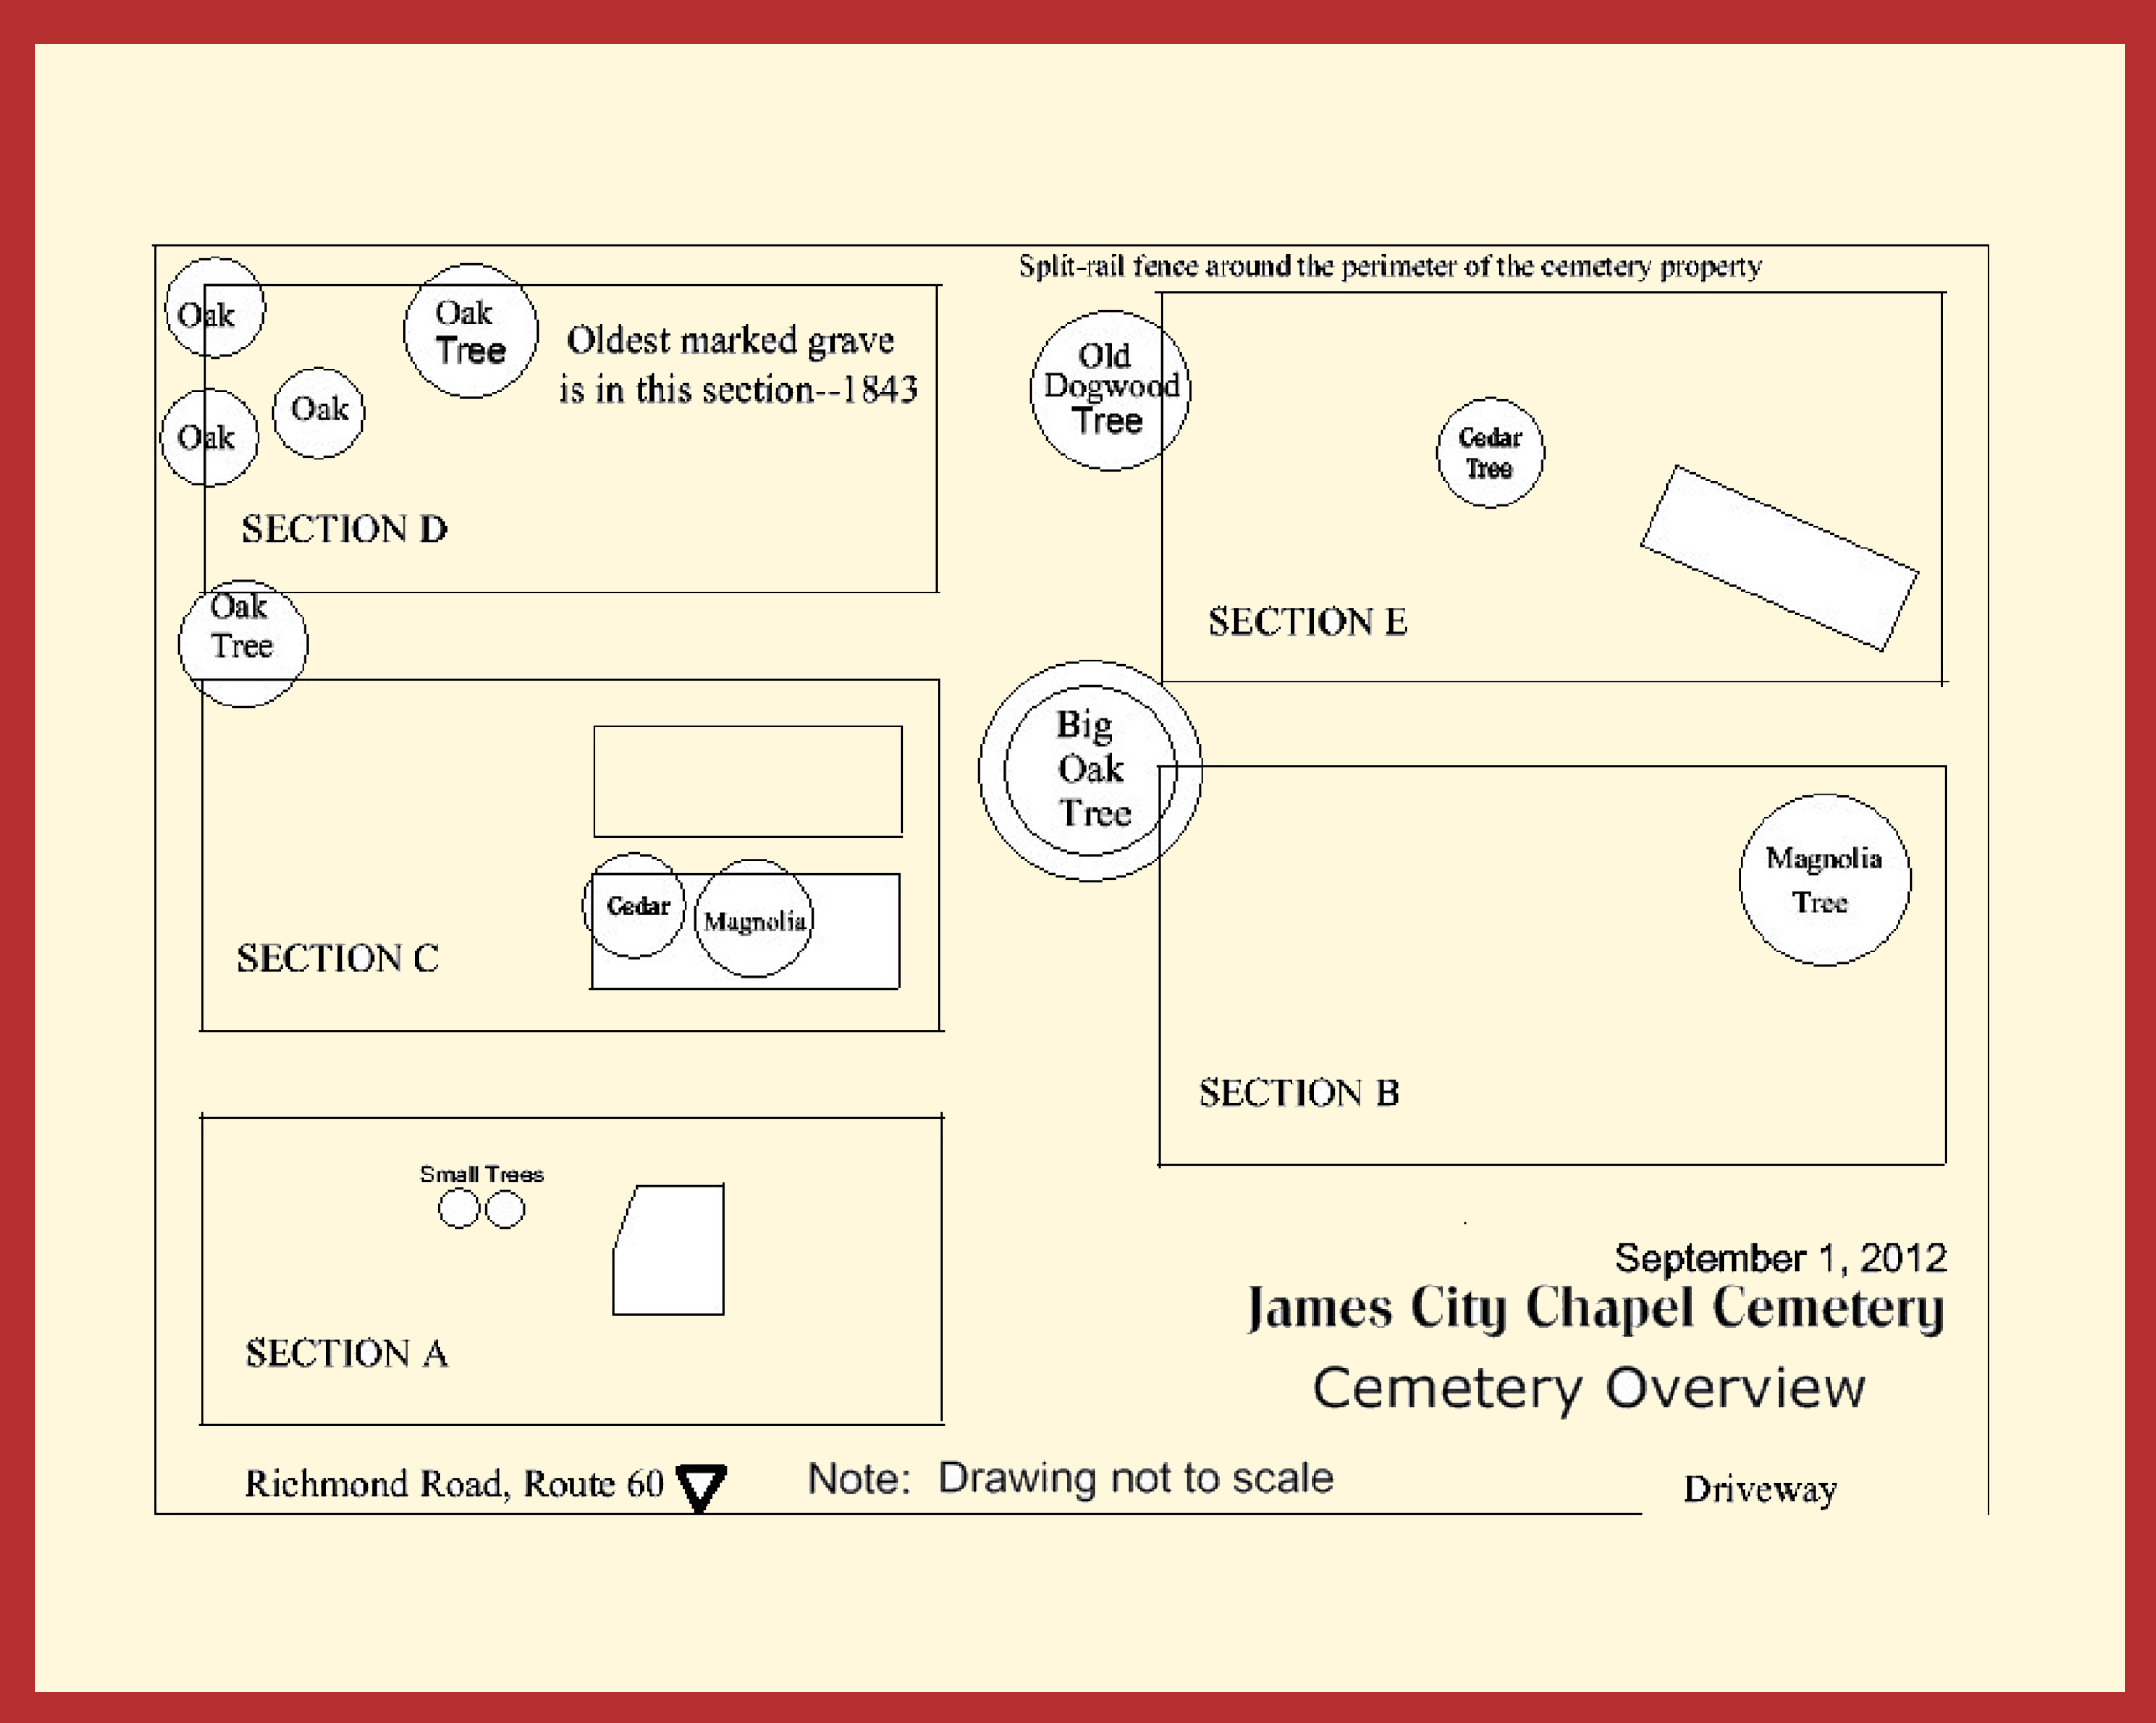 Overview Map of Cemetery